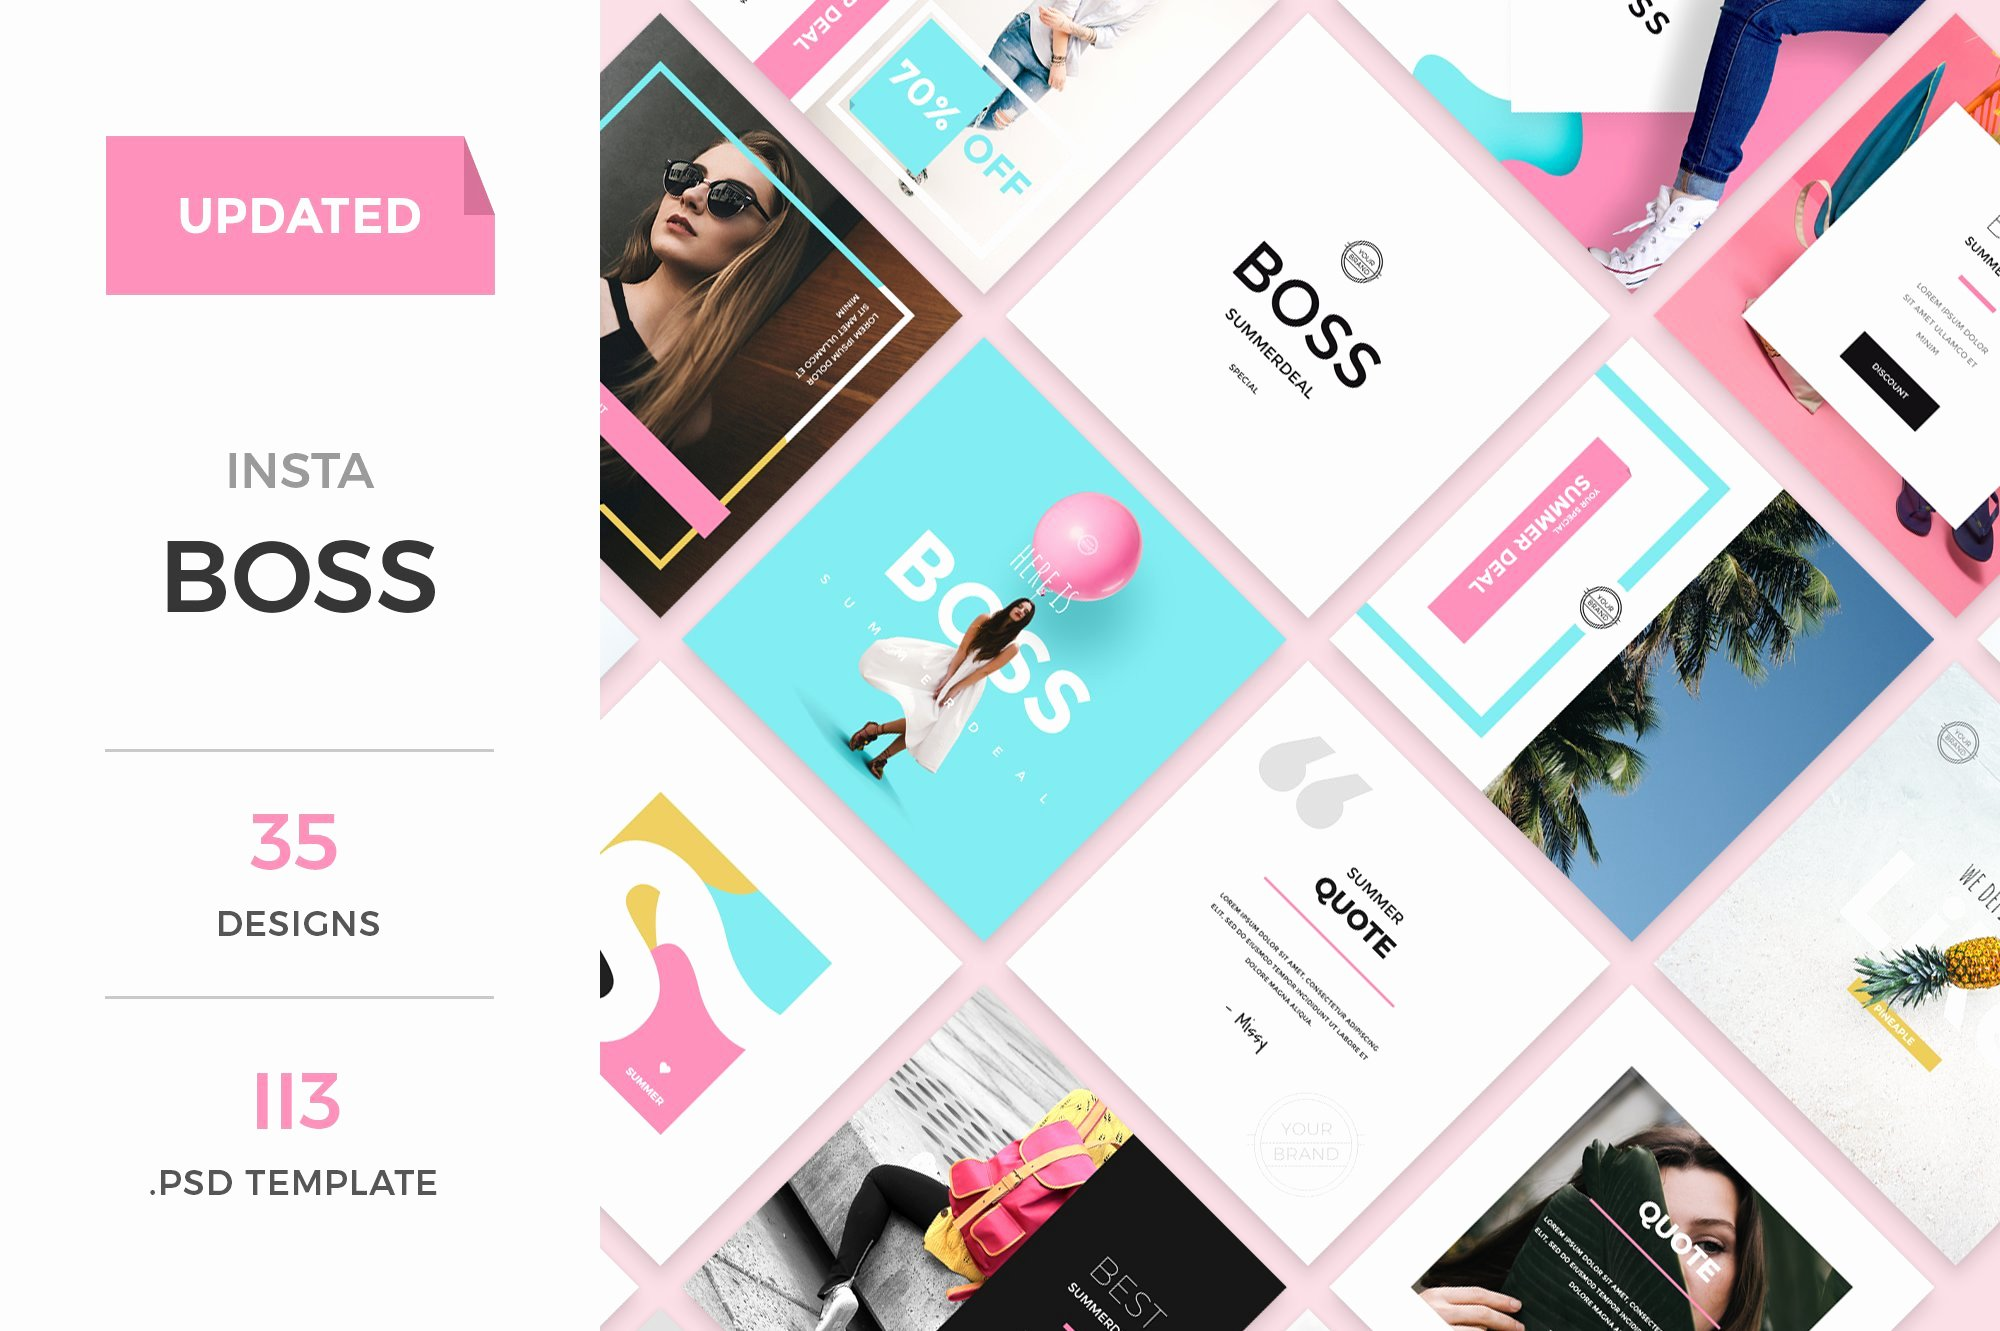 Social Media Template Psd Elegant Instaboss social Media Pack Instagram Templates